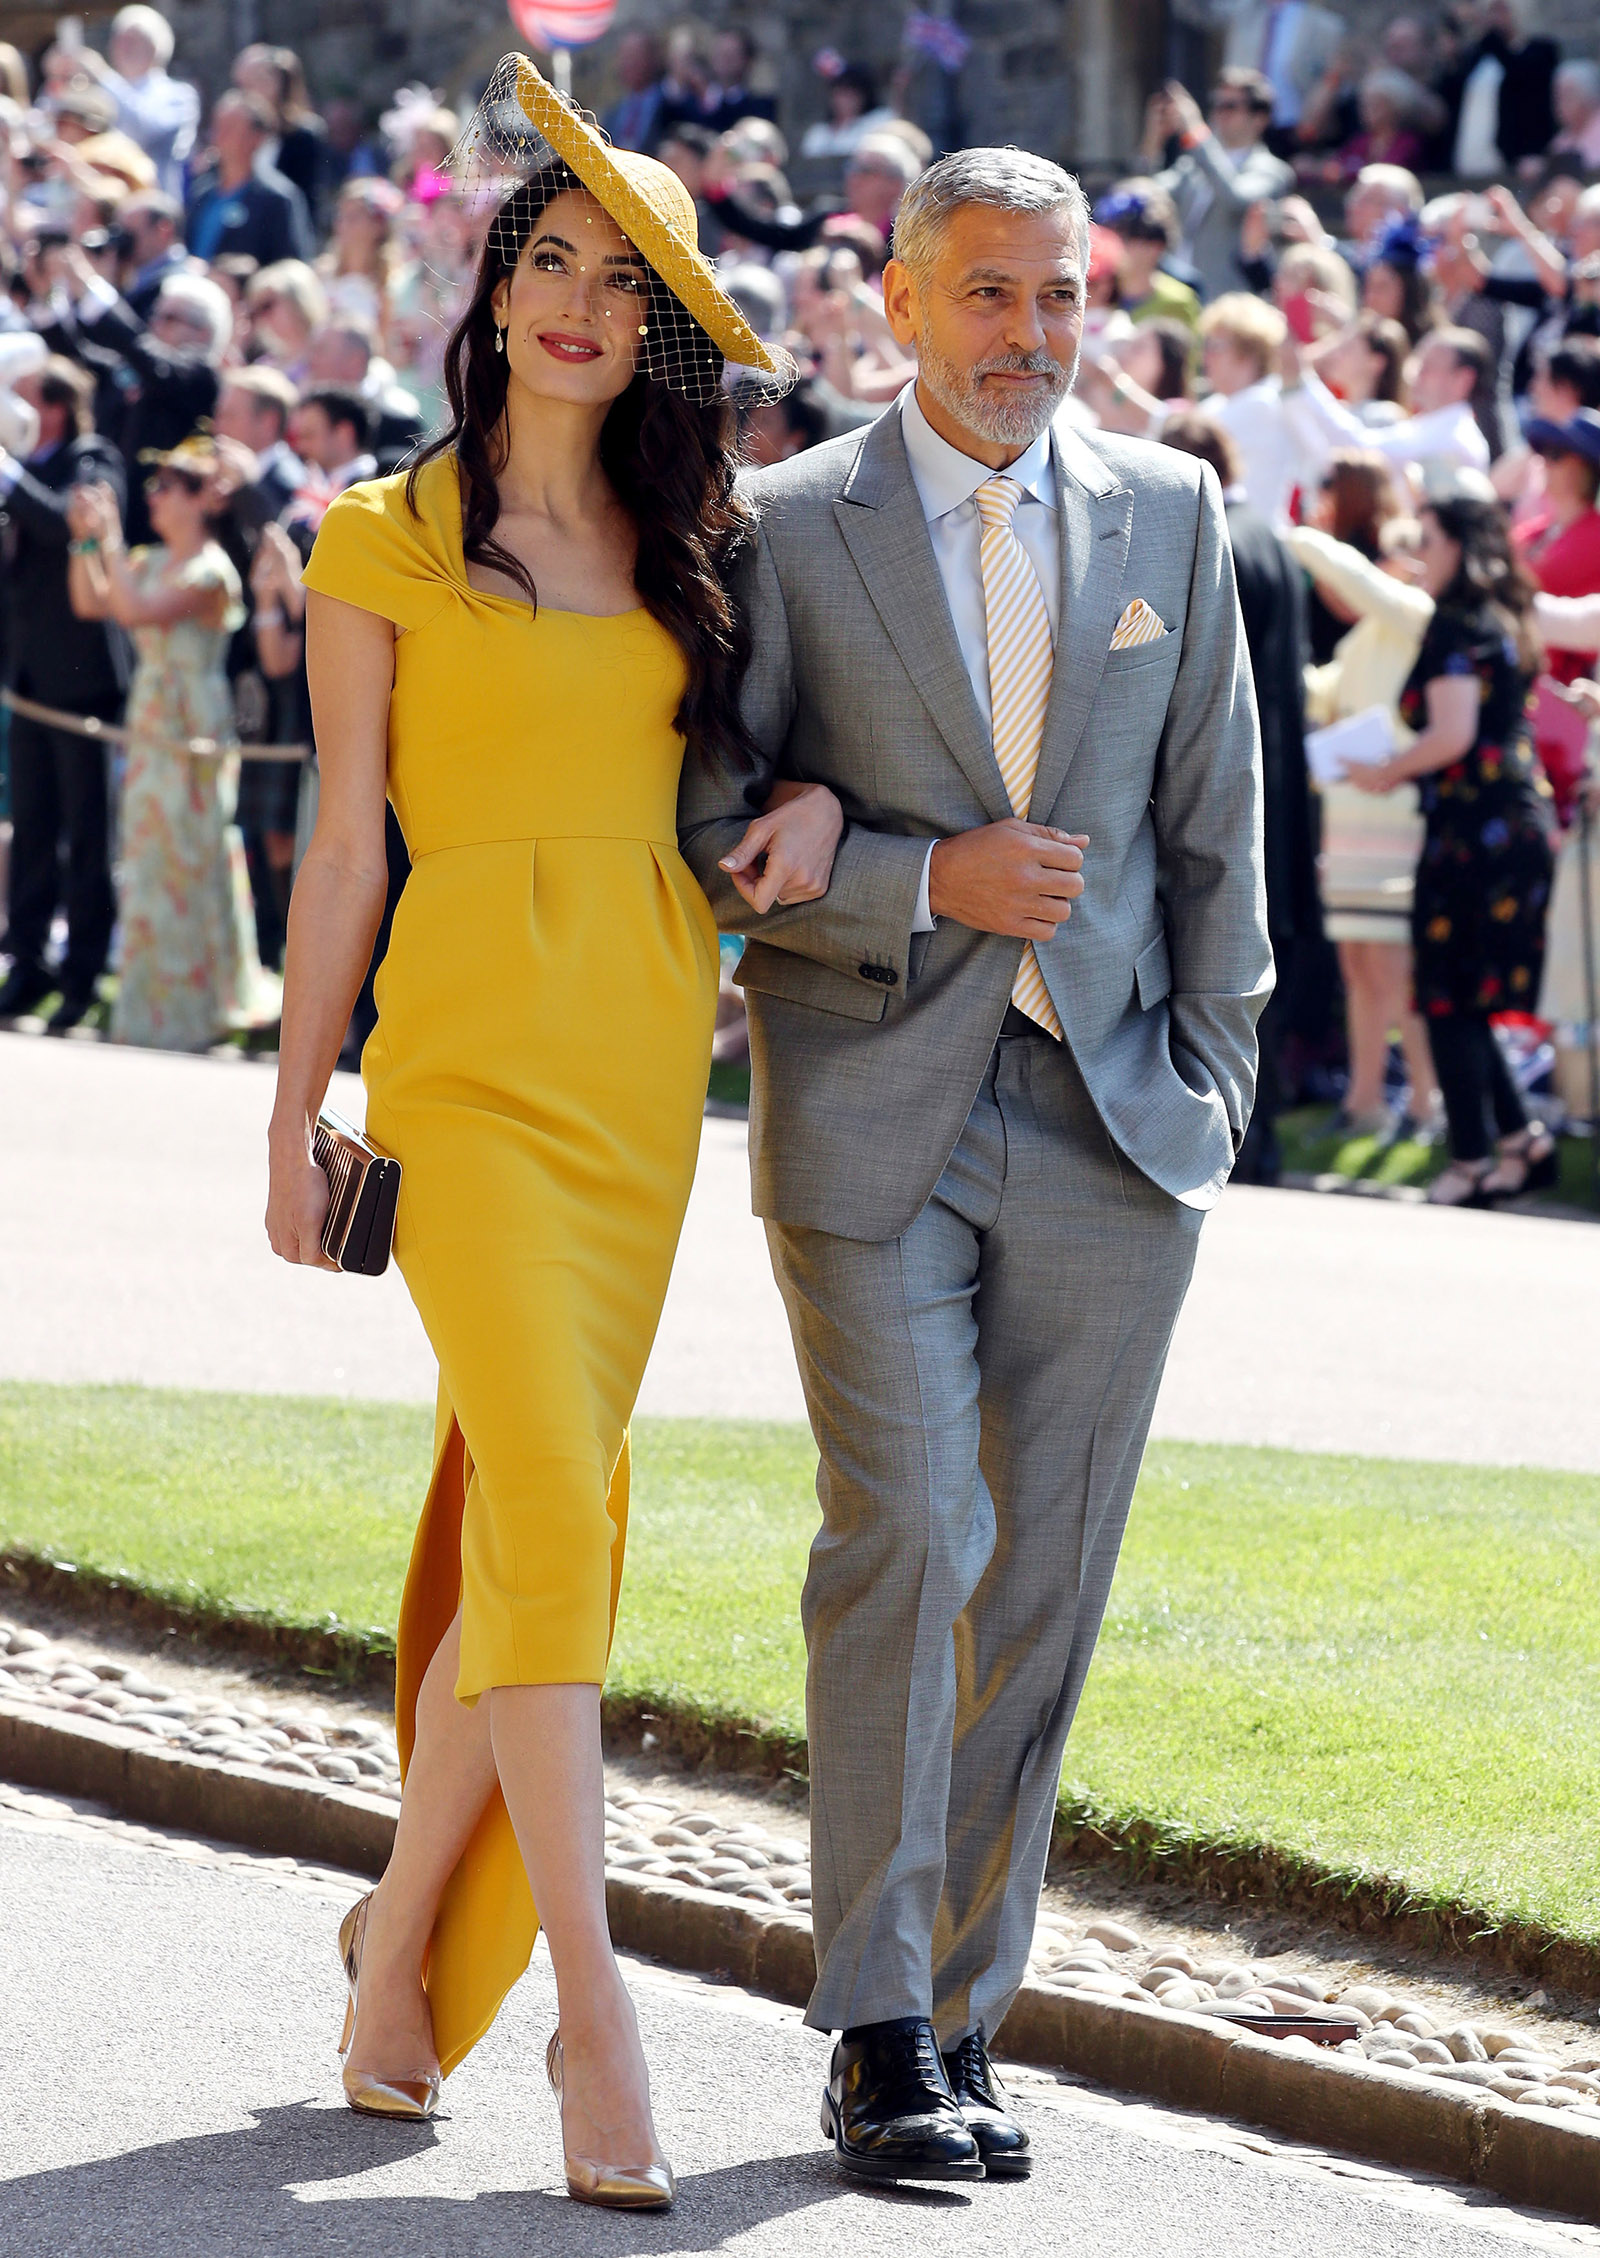 royal-wedding-amal-clooney.jpg